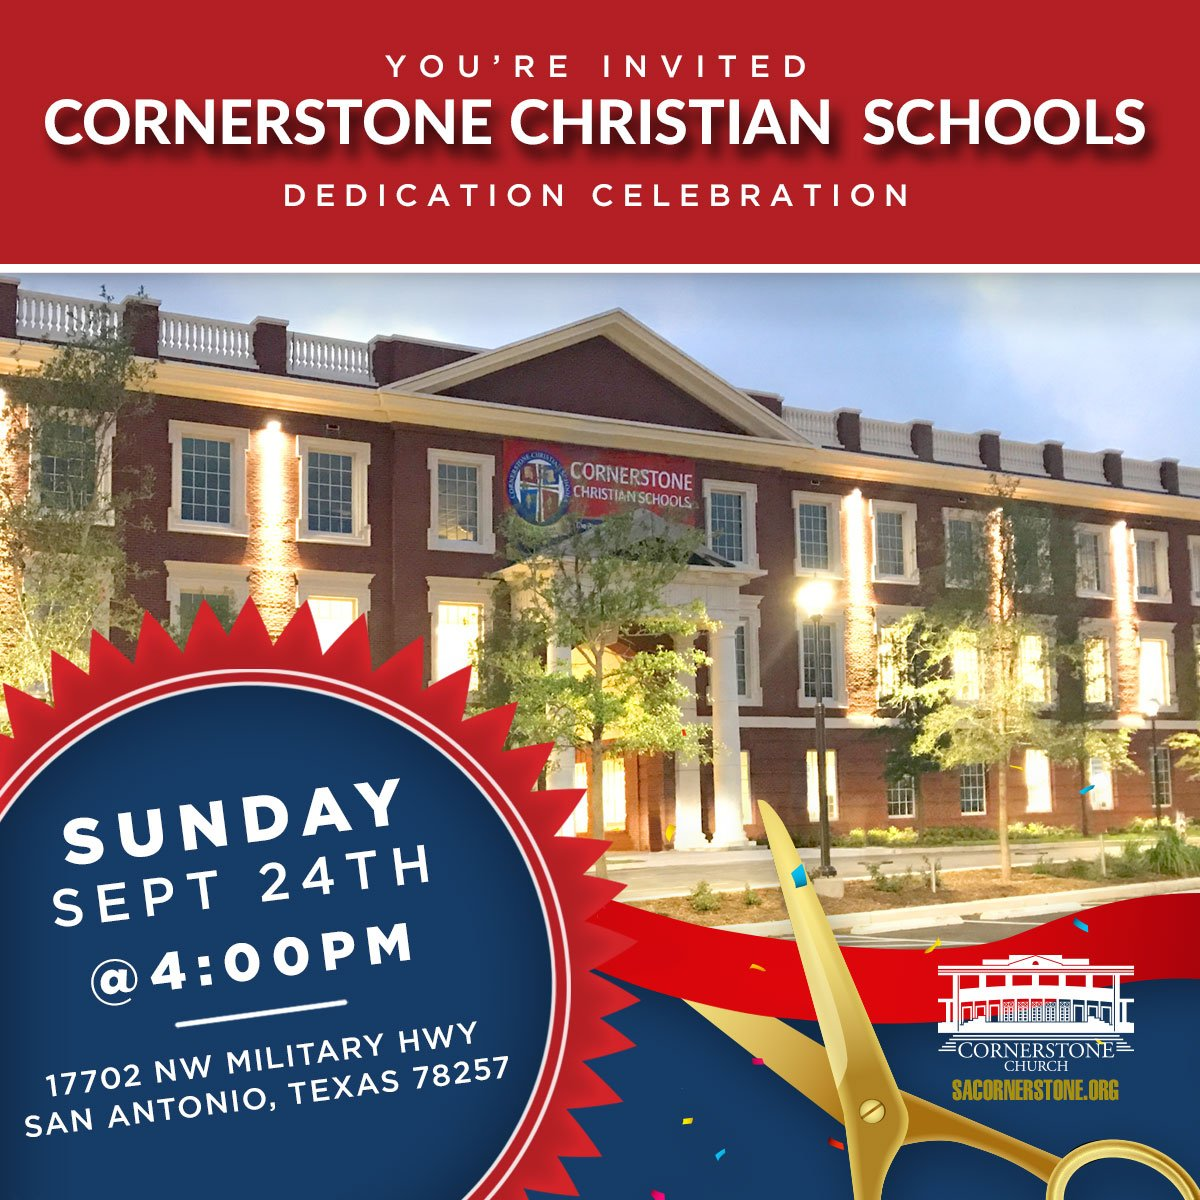 Make plans to join us for the Cornerstone Christian Schools Dedication Service on Sunday, 9